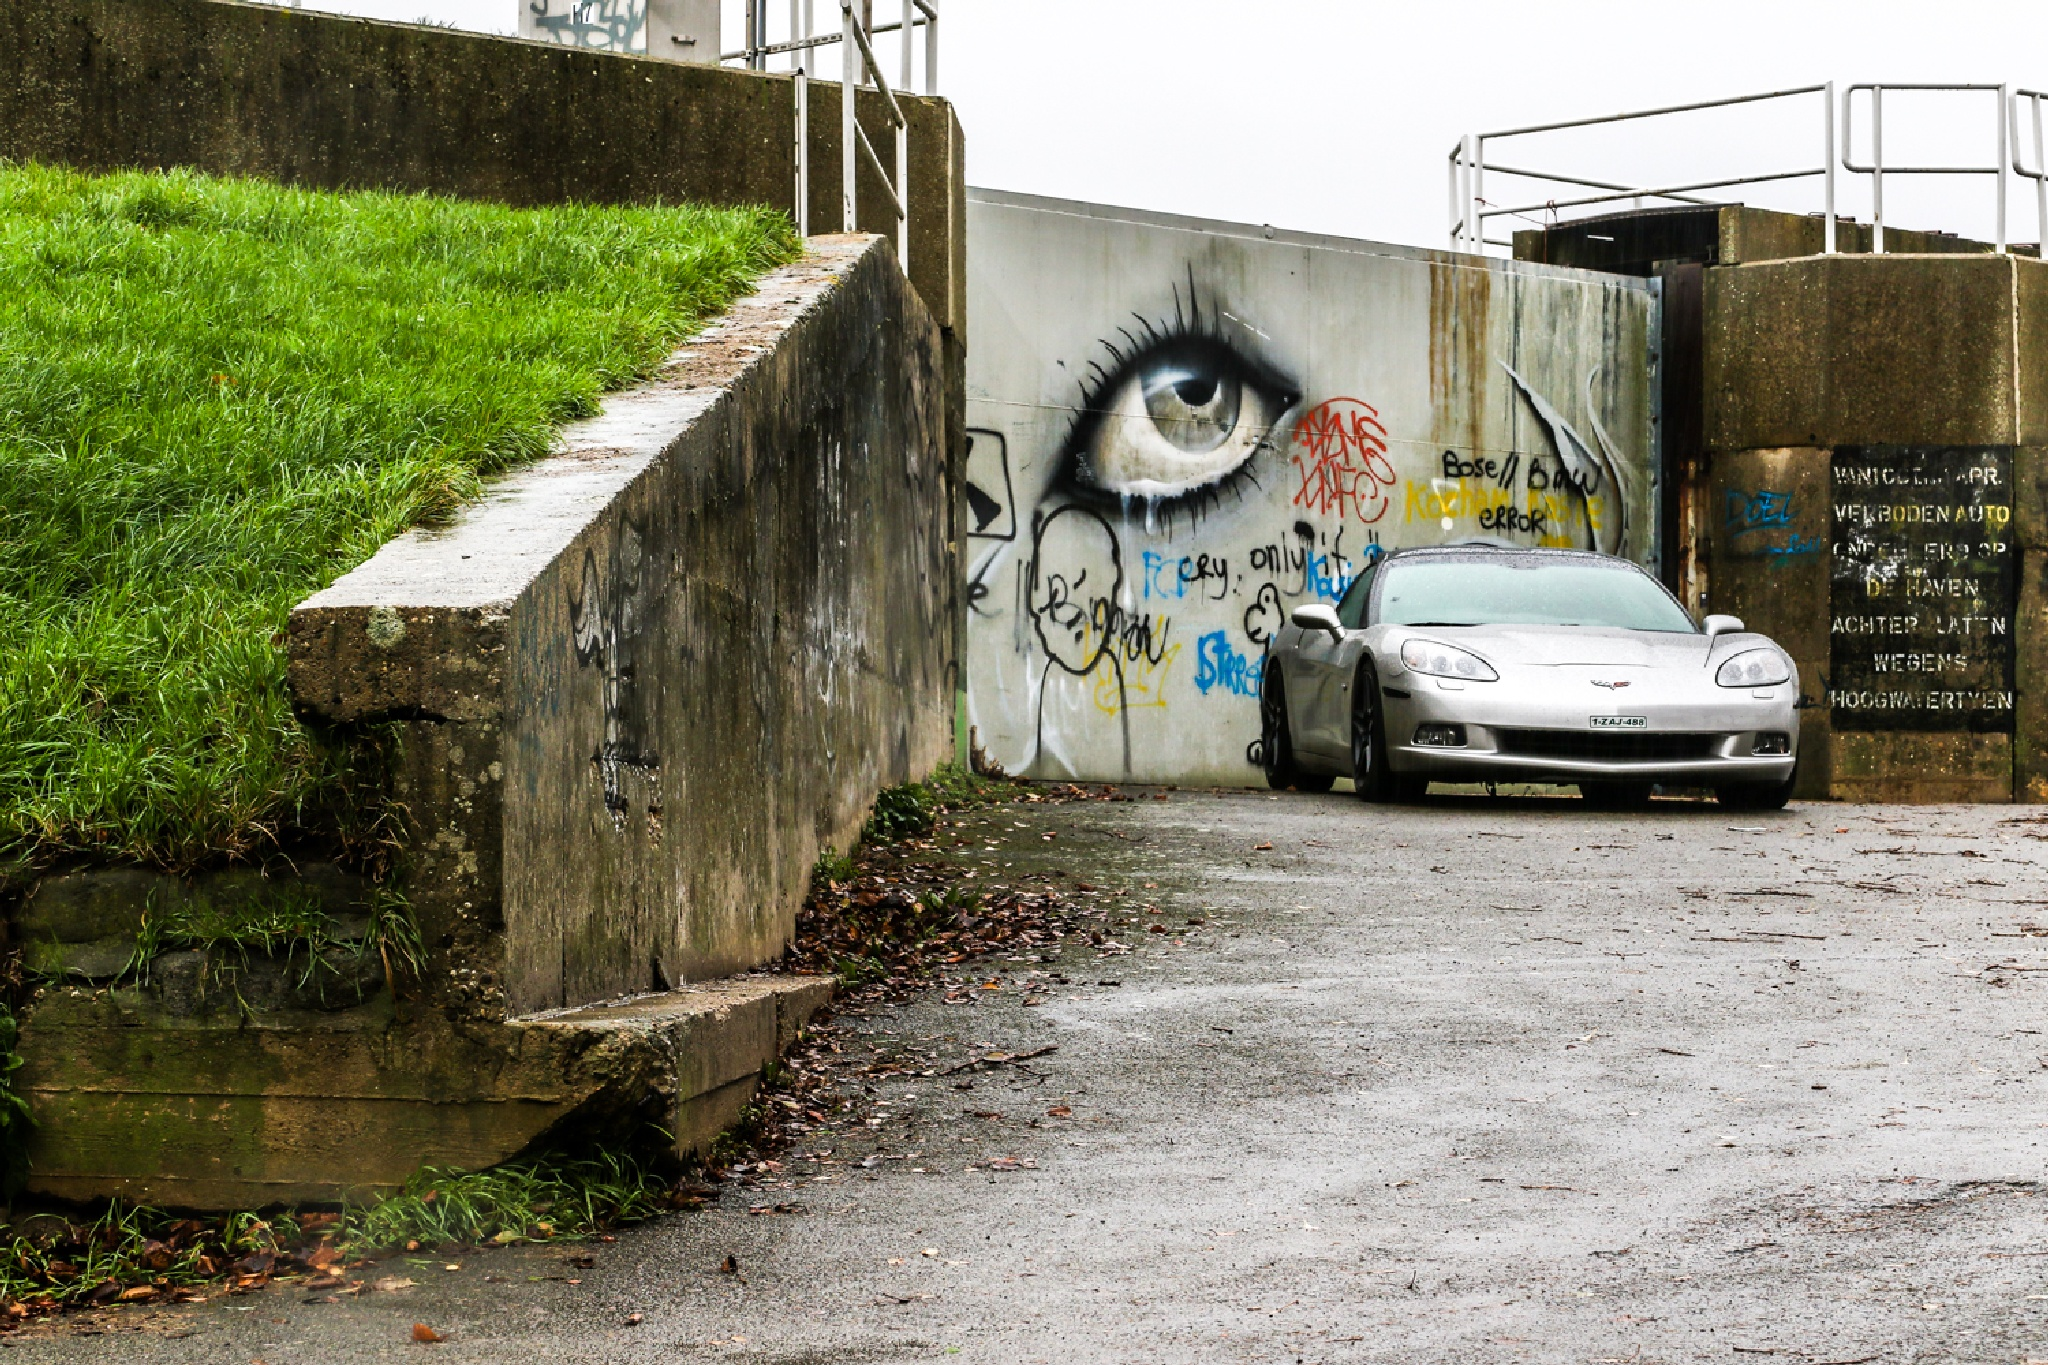 expensive car in a deserted village by Ronny Andries